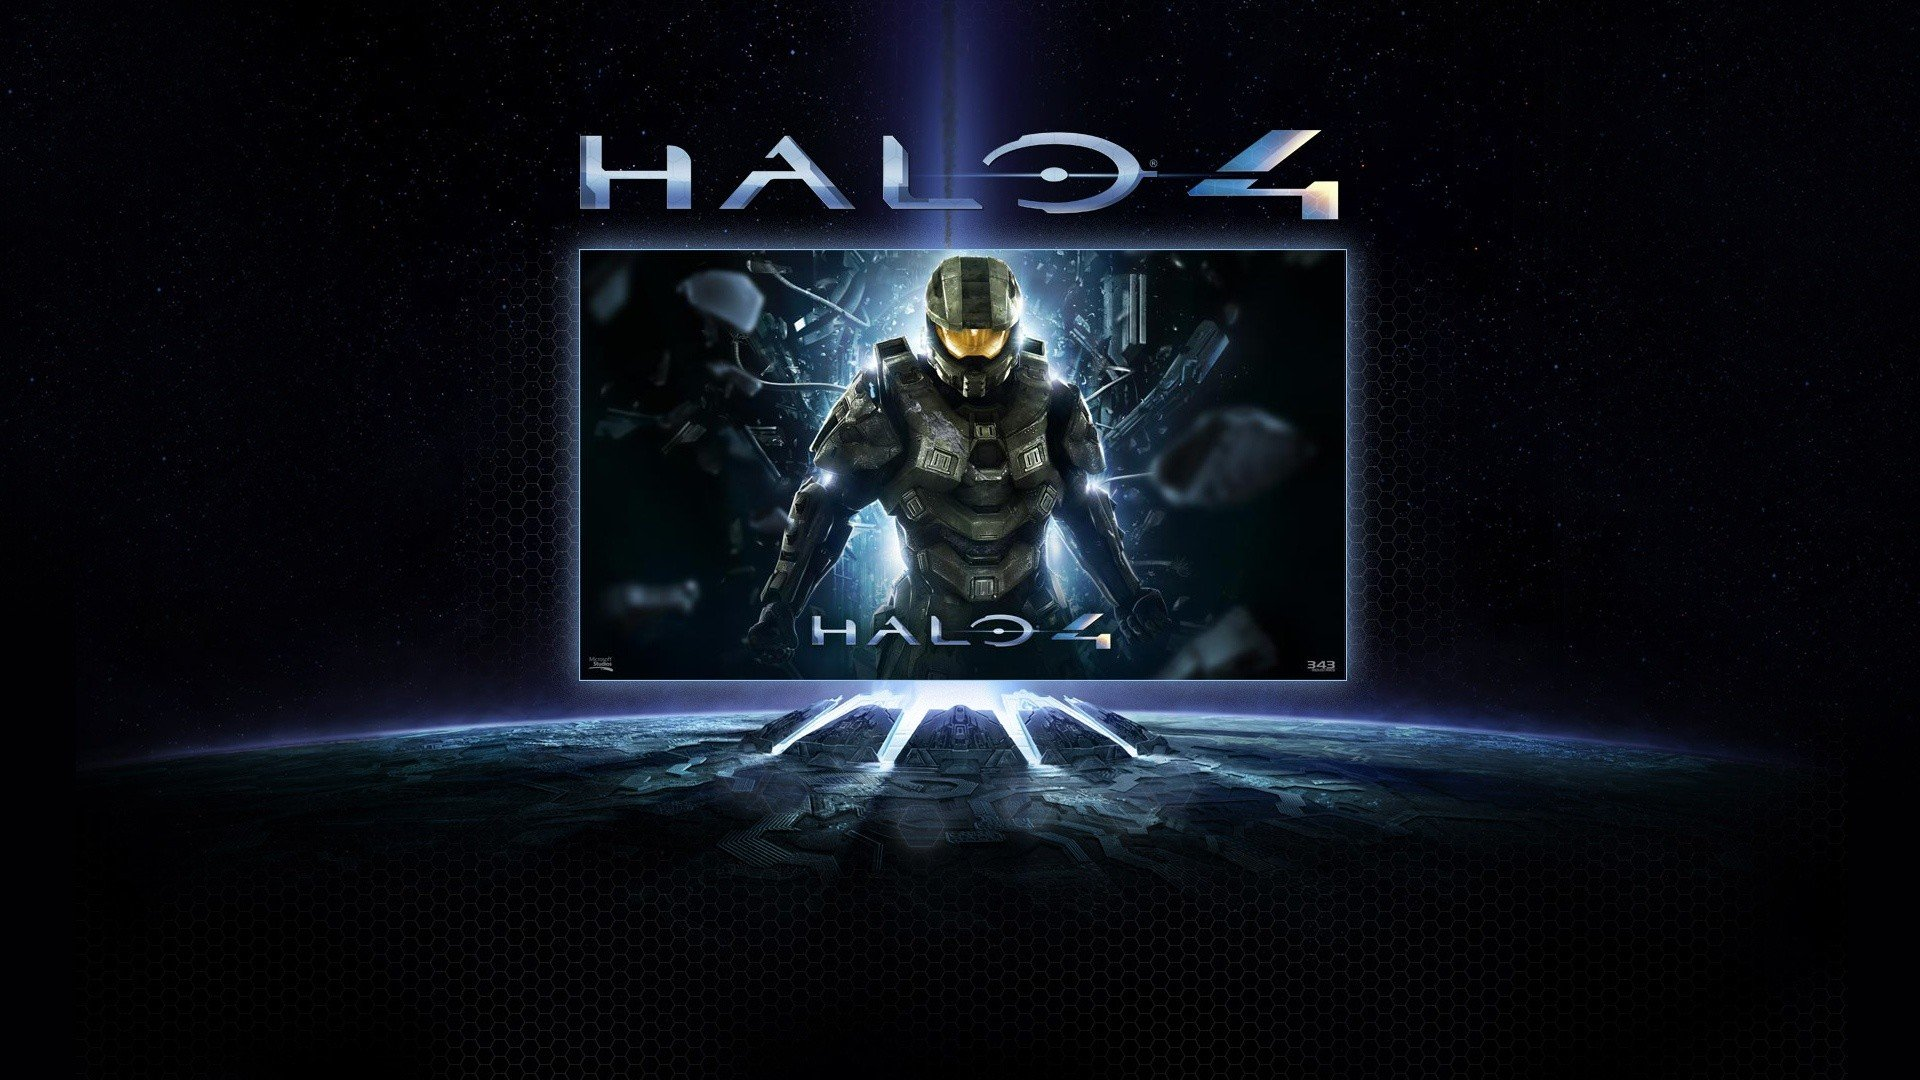 Wallpaper Halo 4 iPhone Wallpaper Halo 4 Android Wallpaper Halo 4 1920x1080